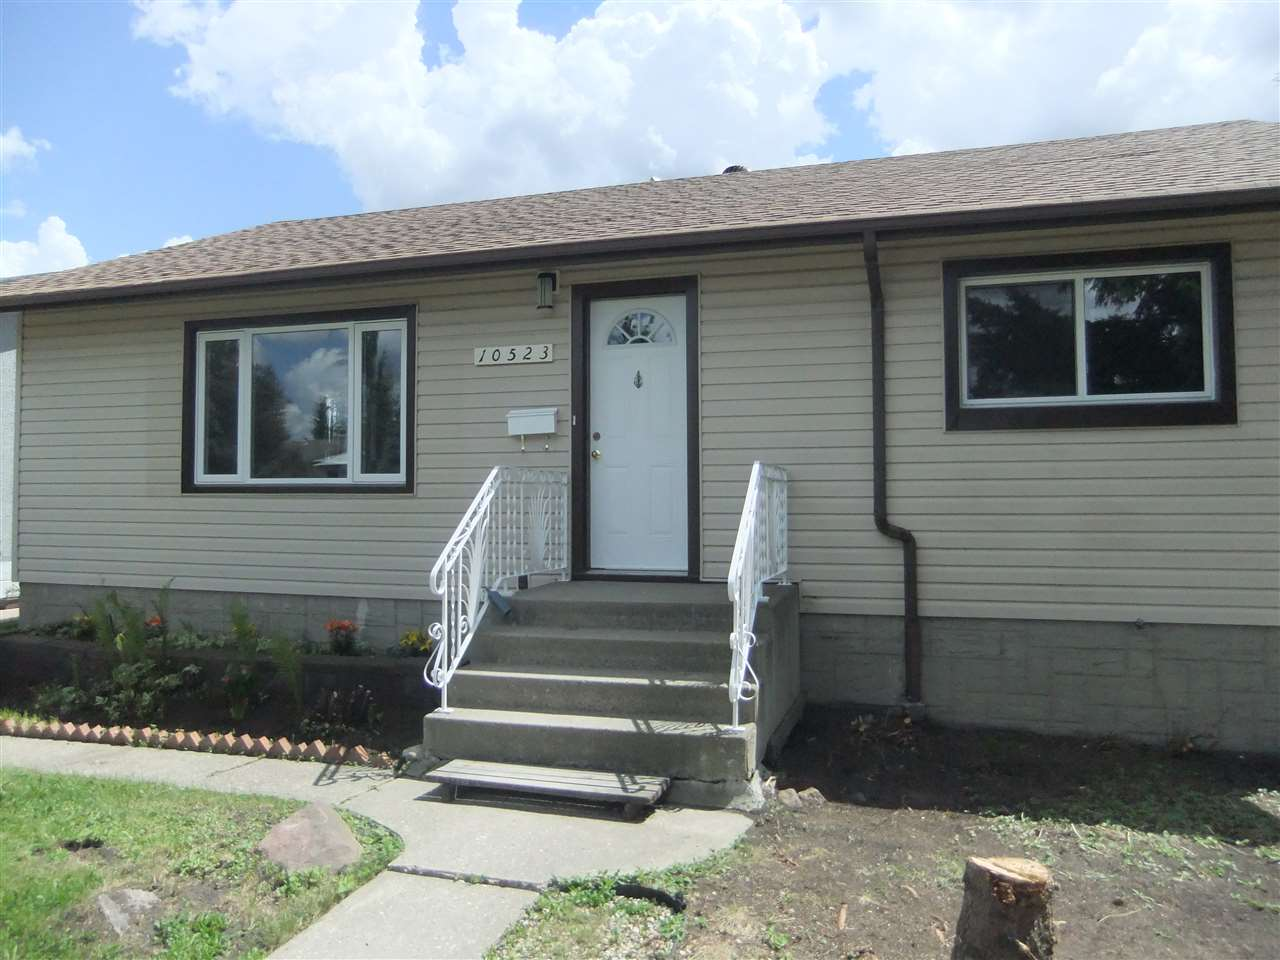 Main Photo: 10523 40 Street NW in Edmonton: Zone 19 House for sale : MLS® # E4069760